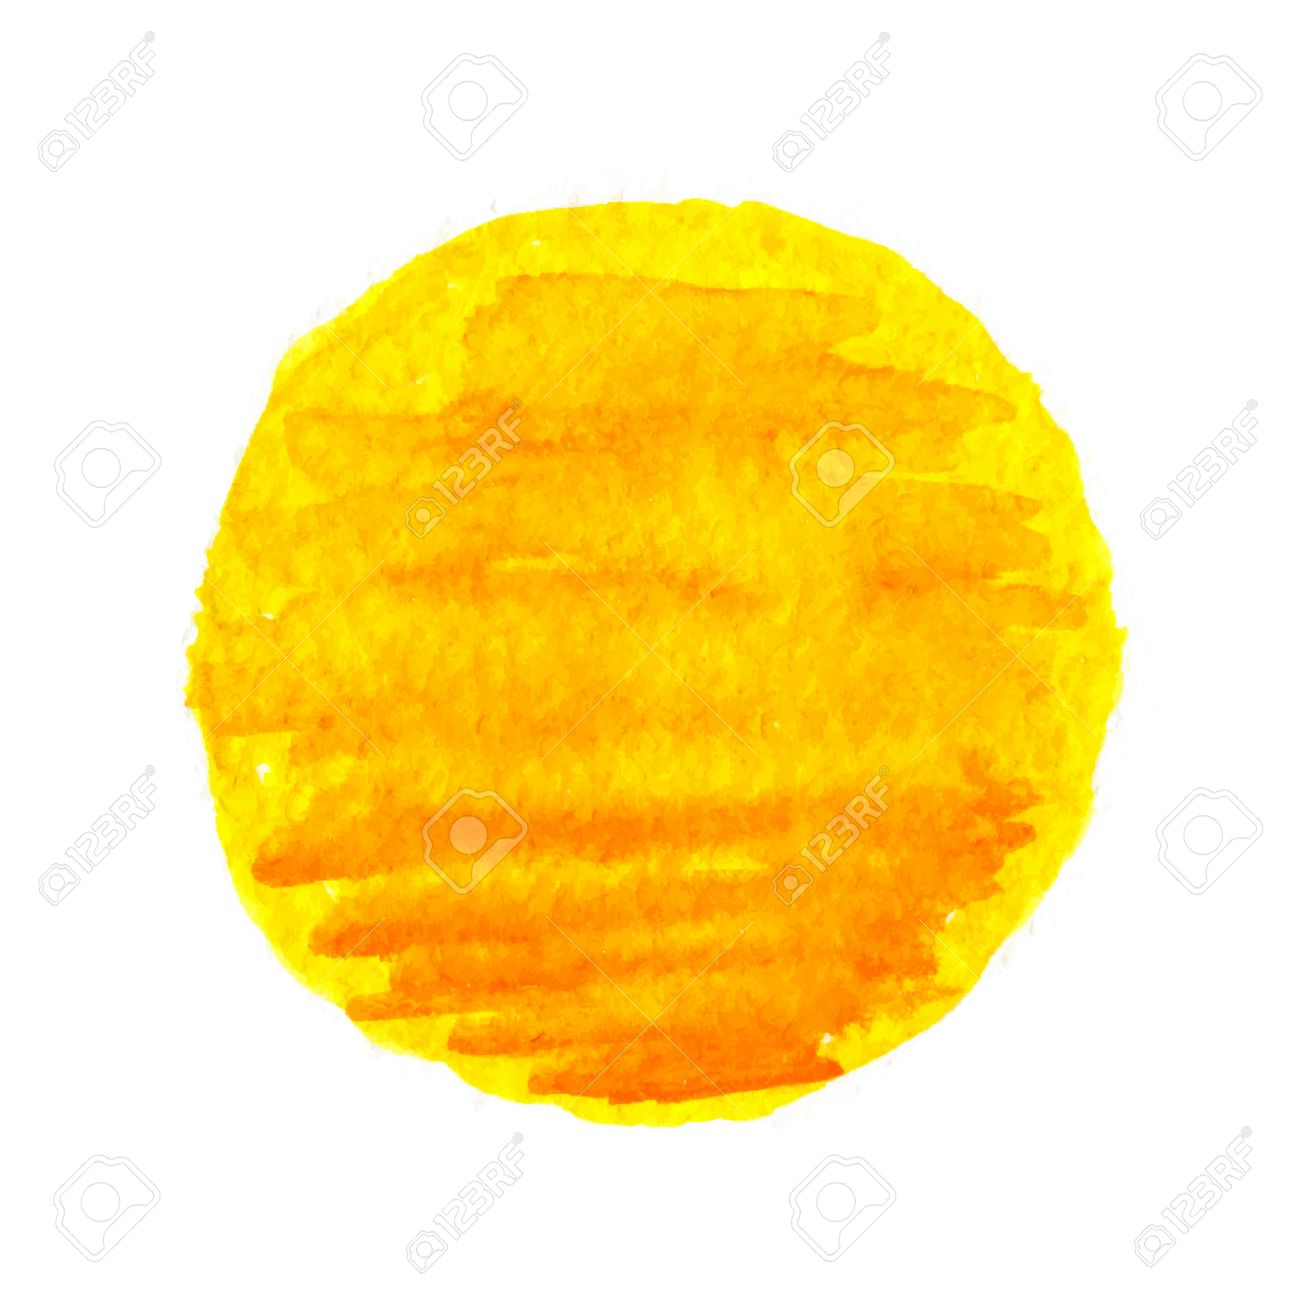 watercolor sun, vector illustration, isolated on white background - 39280403